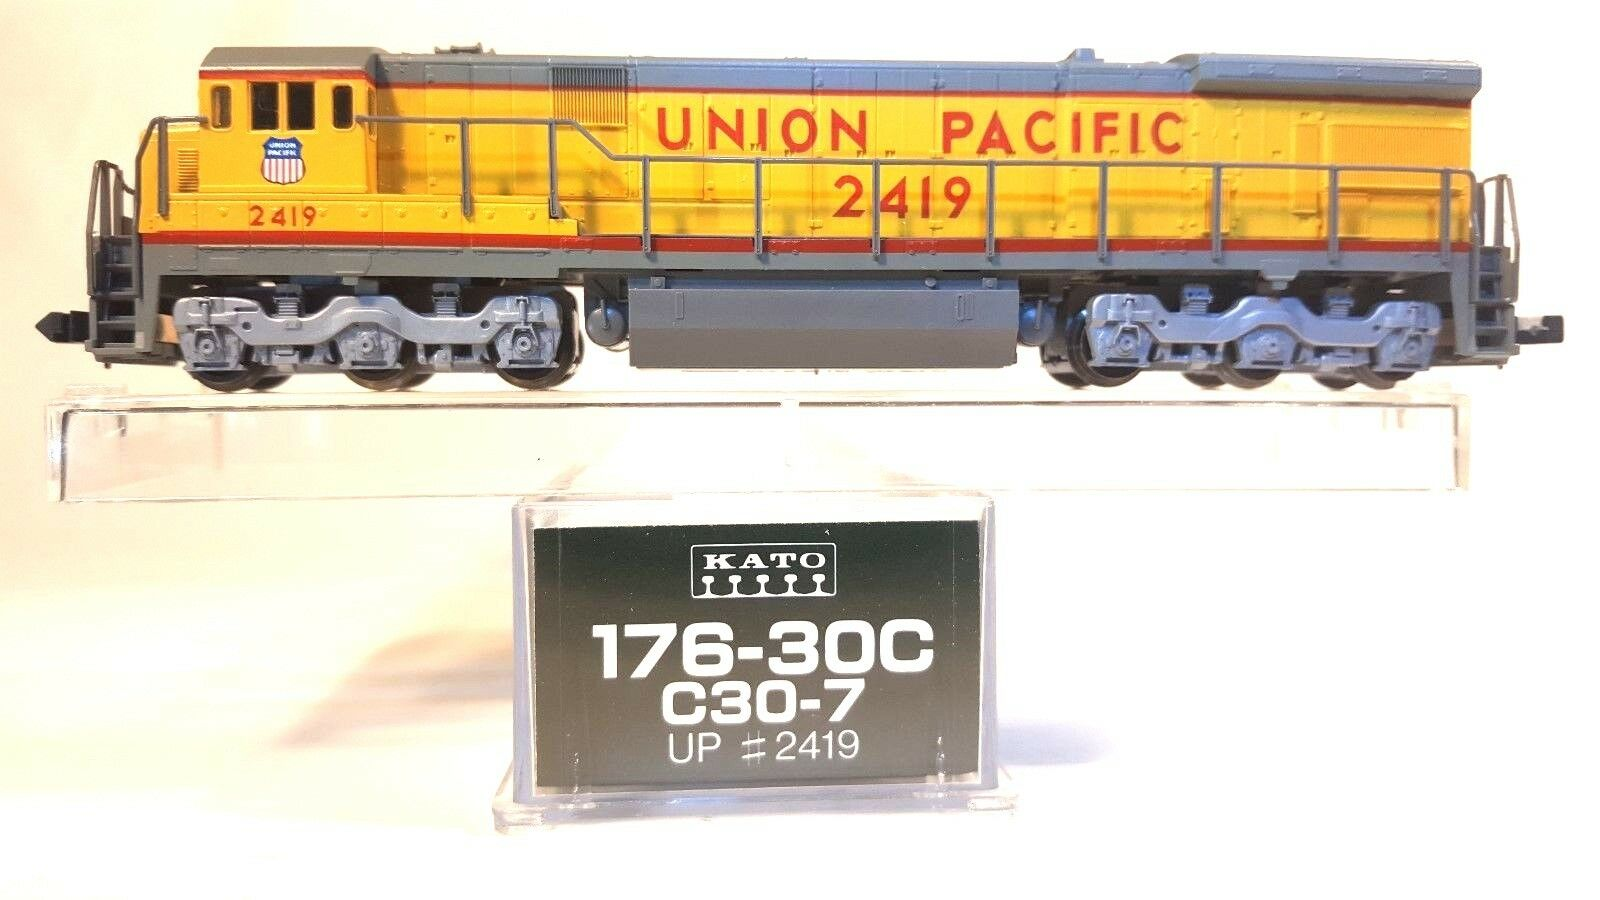 N Kato 176-30C C30-7 Union Pacific Locomotive (Tested)